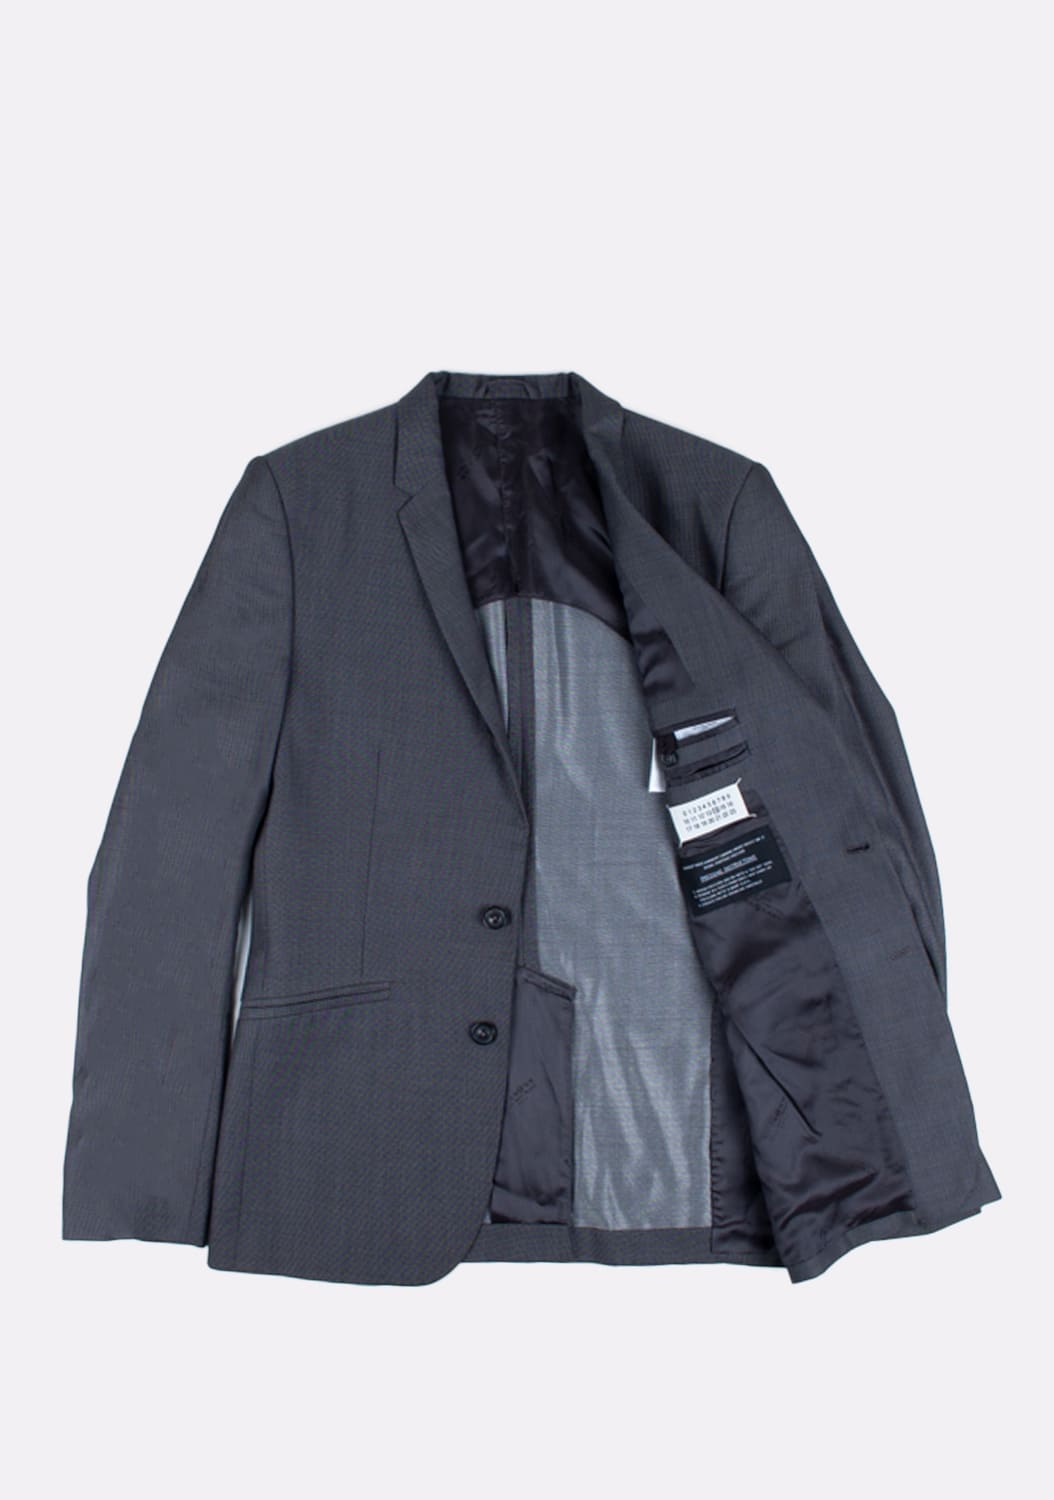 urocklt-Maison-Martin-Margiela-Jacket-Slim-Wool-Silk-Blend-Blazer-48-ITA-Grey (3)